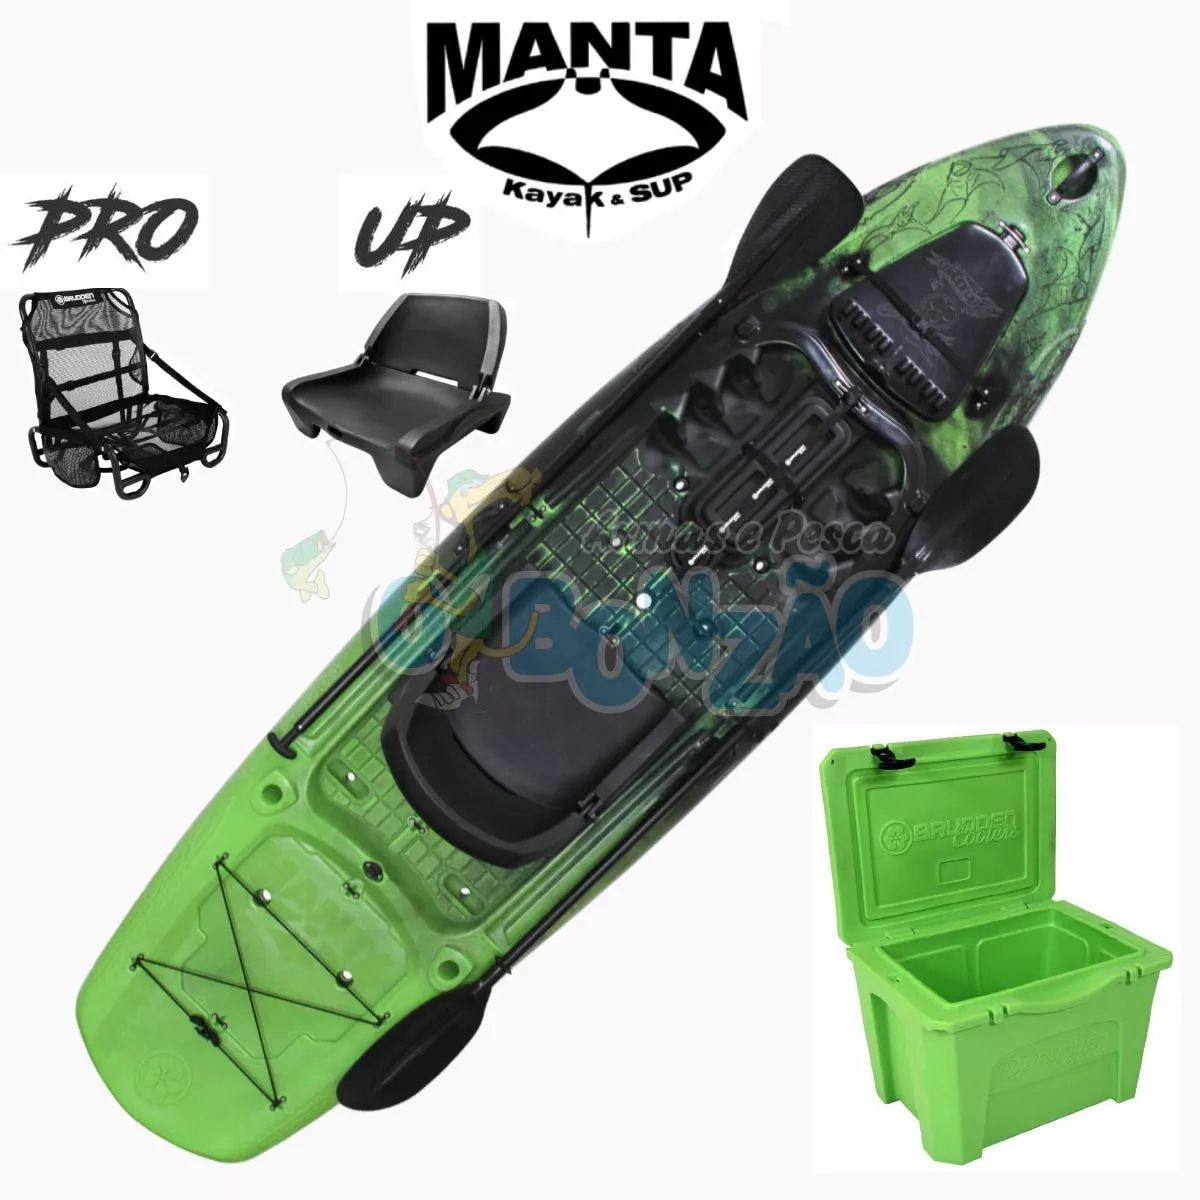 Caiaque Brudden Stand UP Manta Fishing Combo - Lima